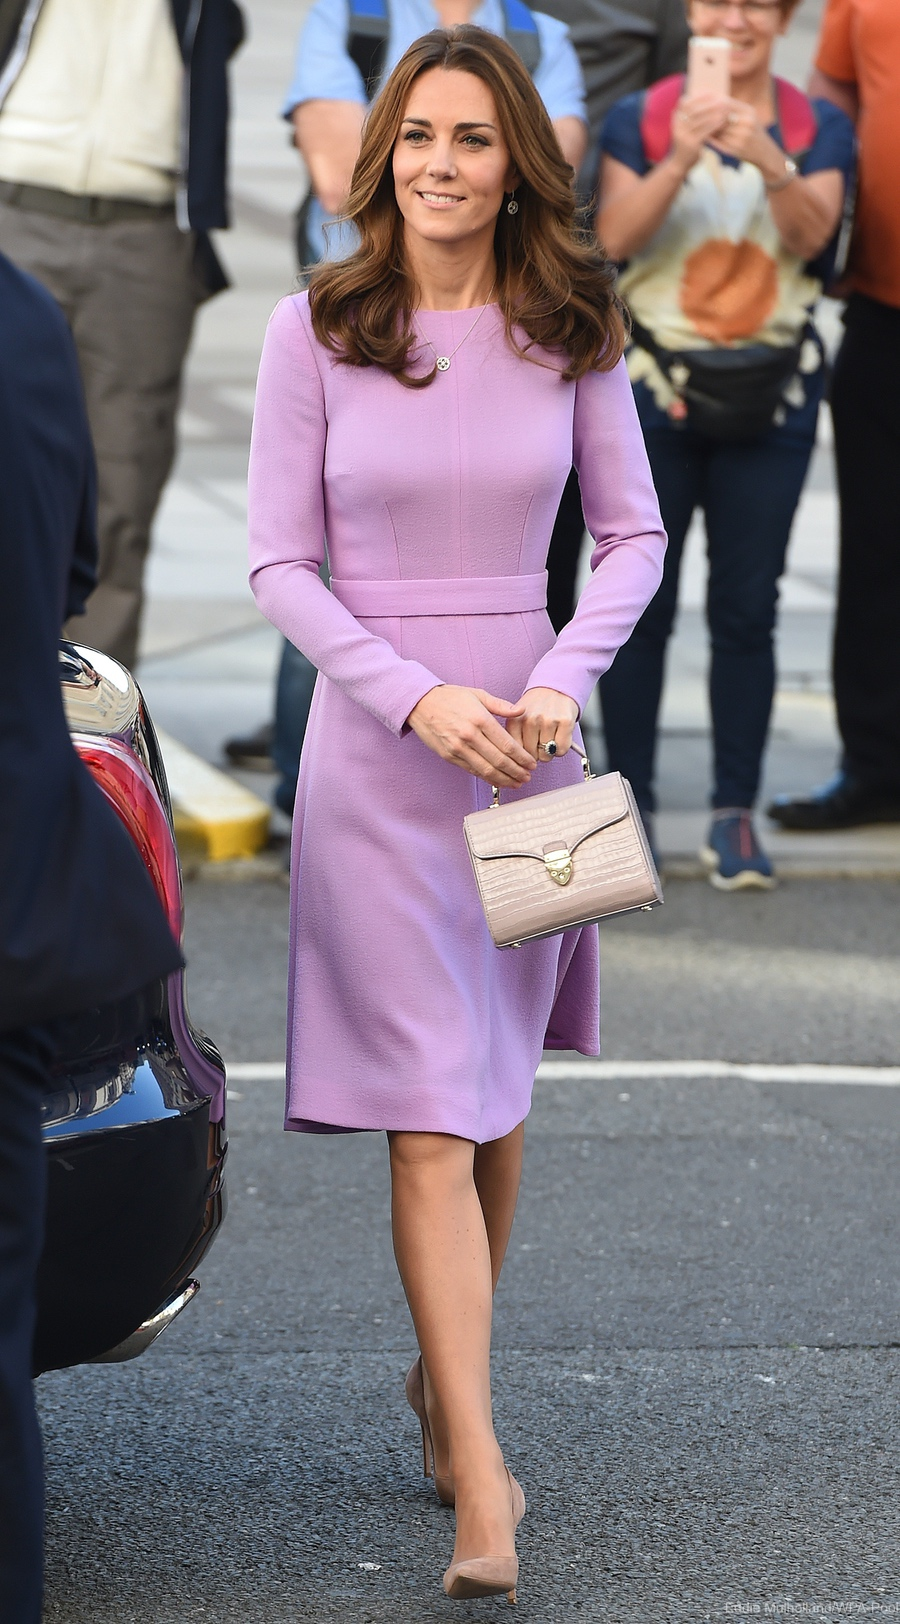 Kate Middleton's outfit at the mental health summit in Oct 2018. Duchess Kate wore the purple dress in Hamburg, Germany last year too.